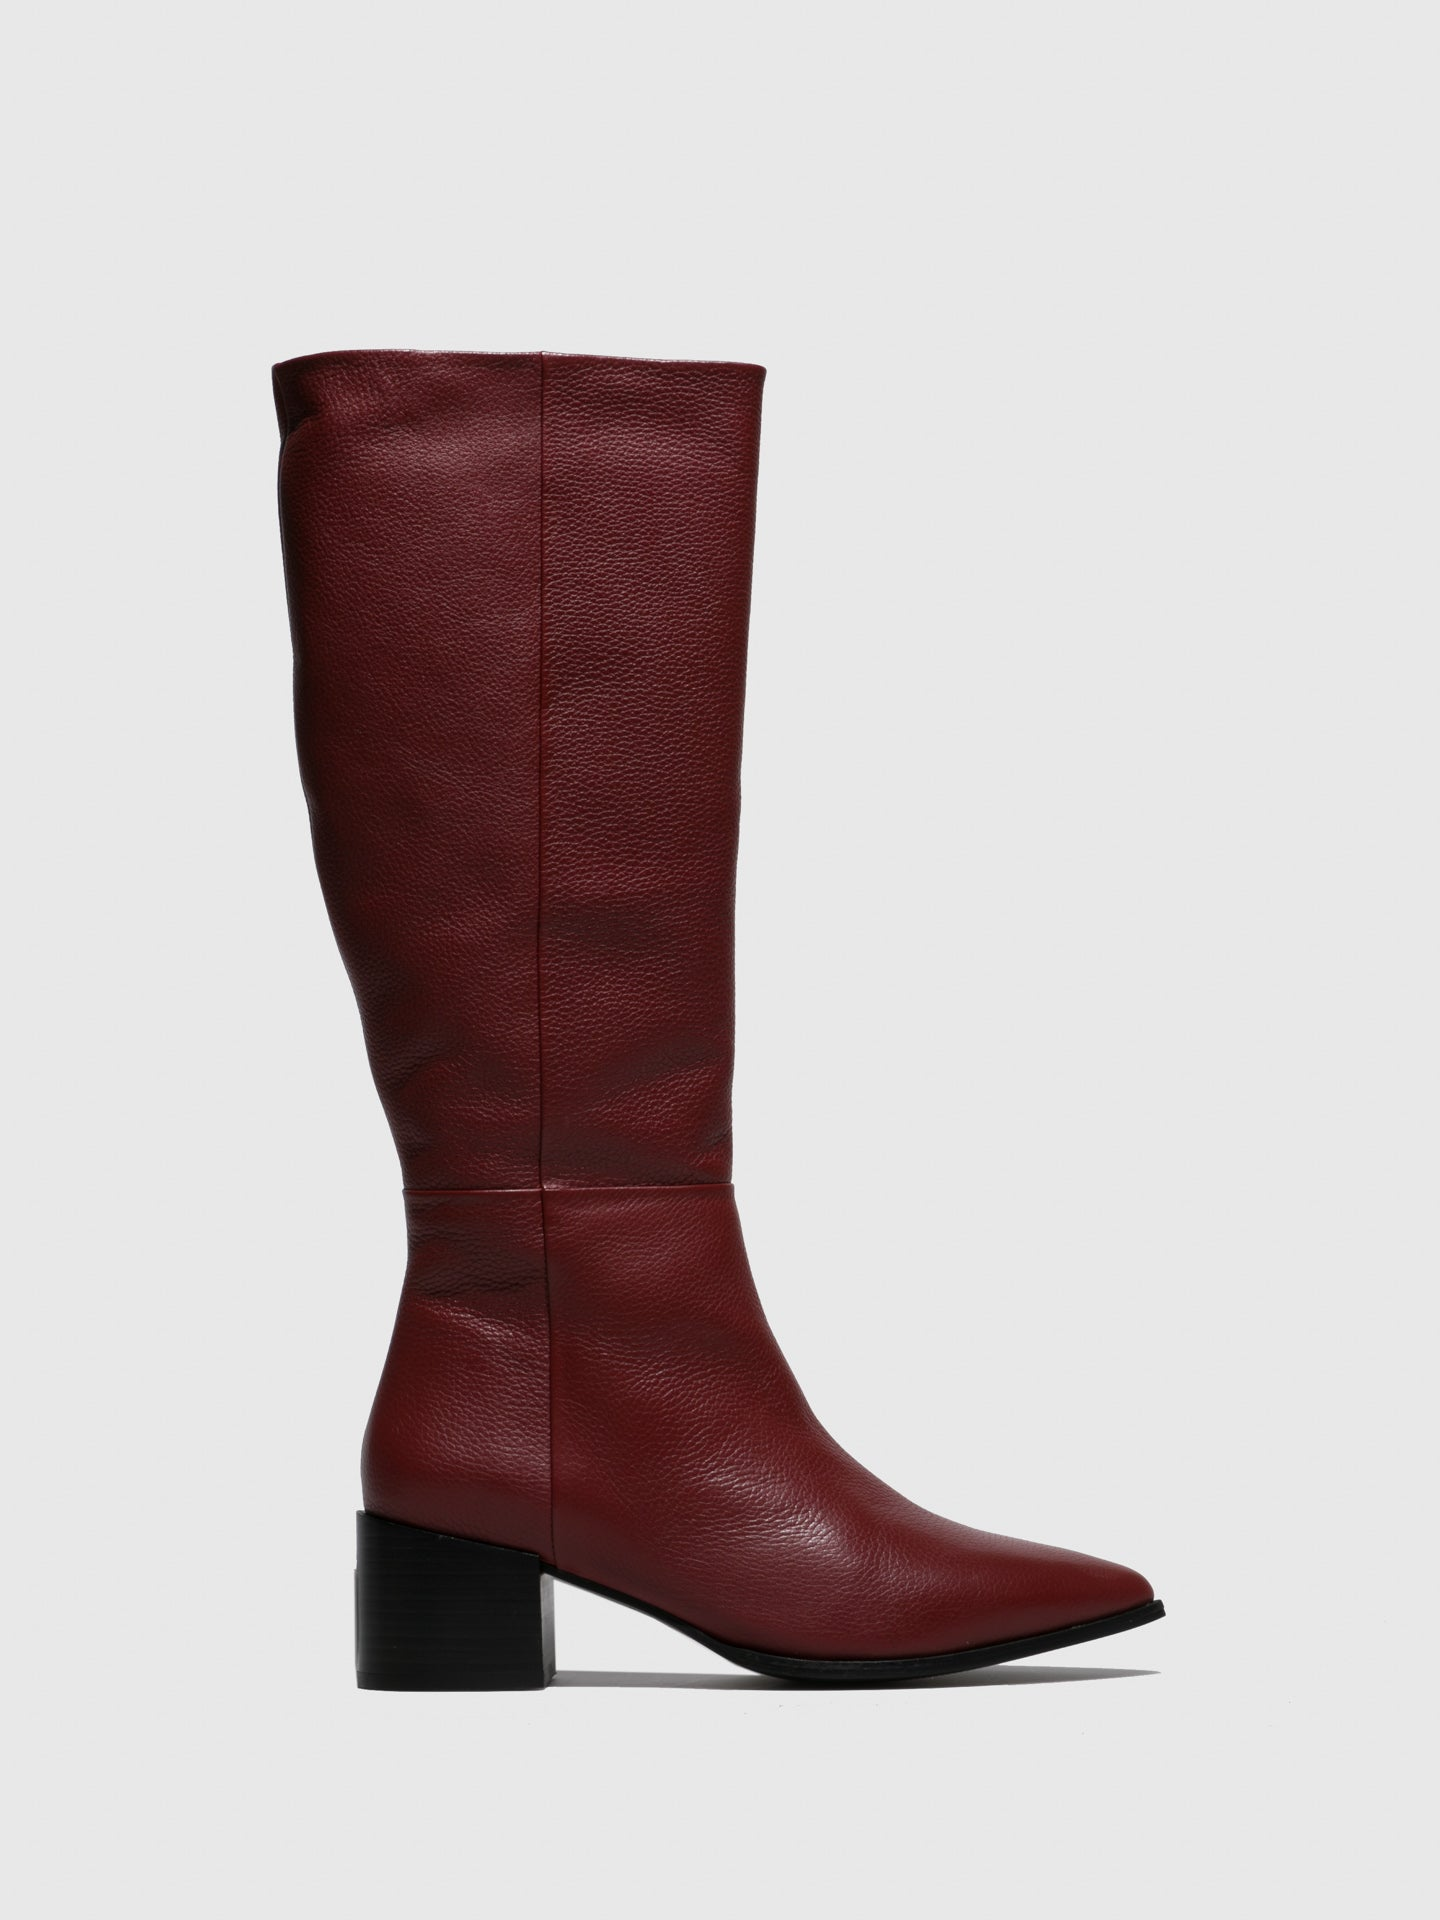 JJ Heitor DarkRed Zip Up Boots